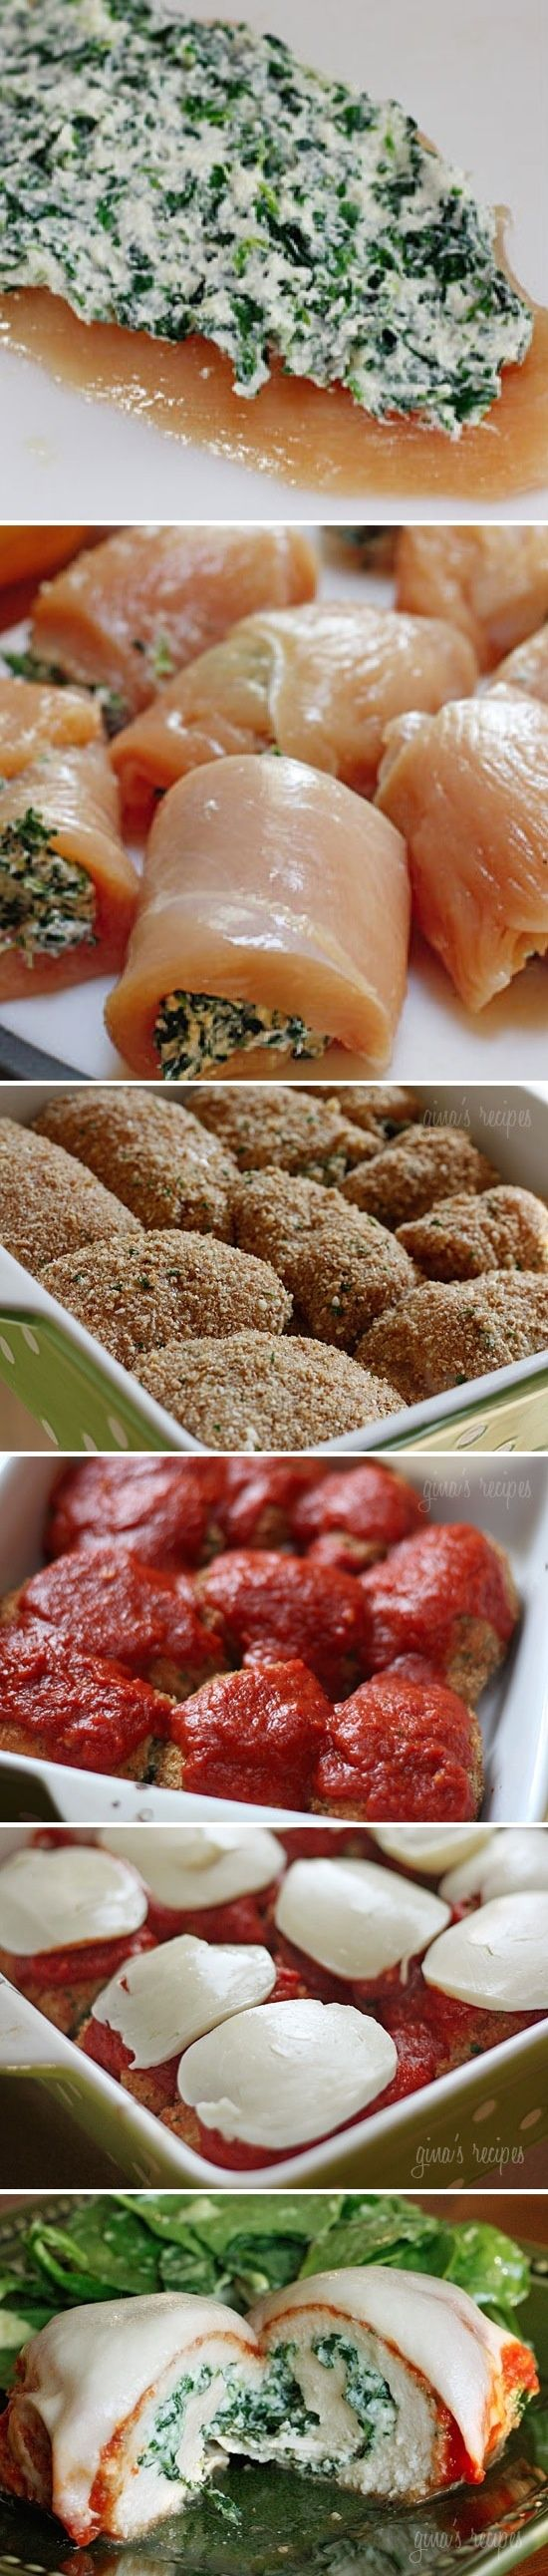 Chicken Rollatini ~ chicken stuffed with spinach and a yummy cheese mixture then coat them with bread crumbs and top them with more cheese... delish!